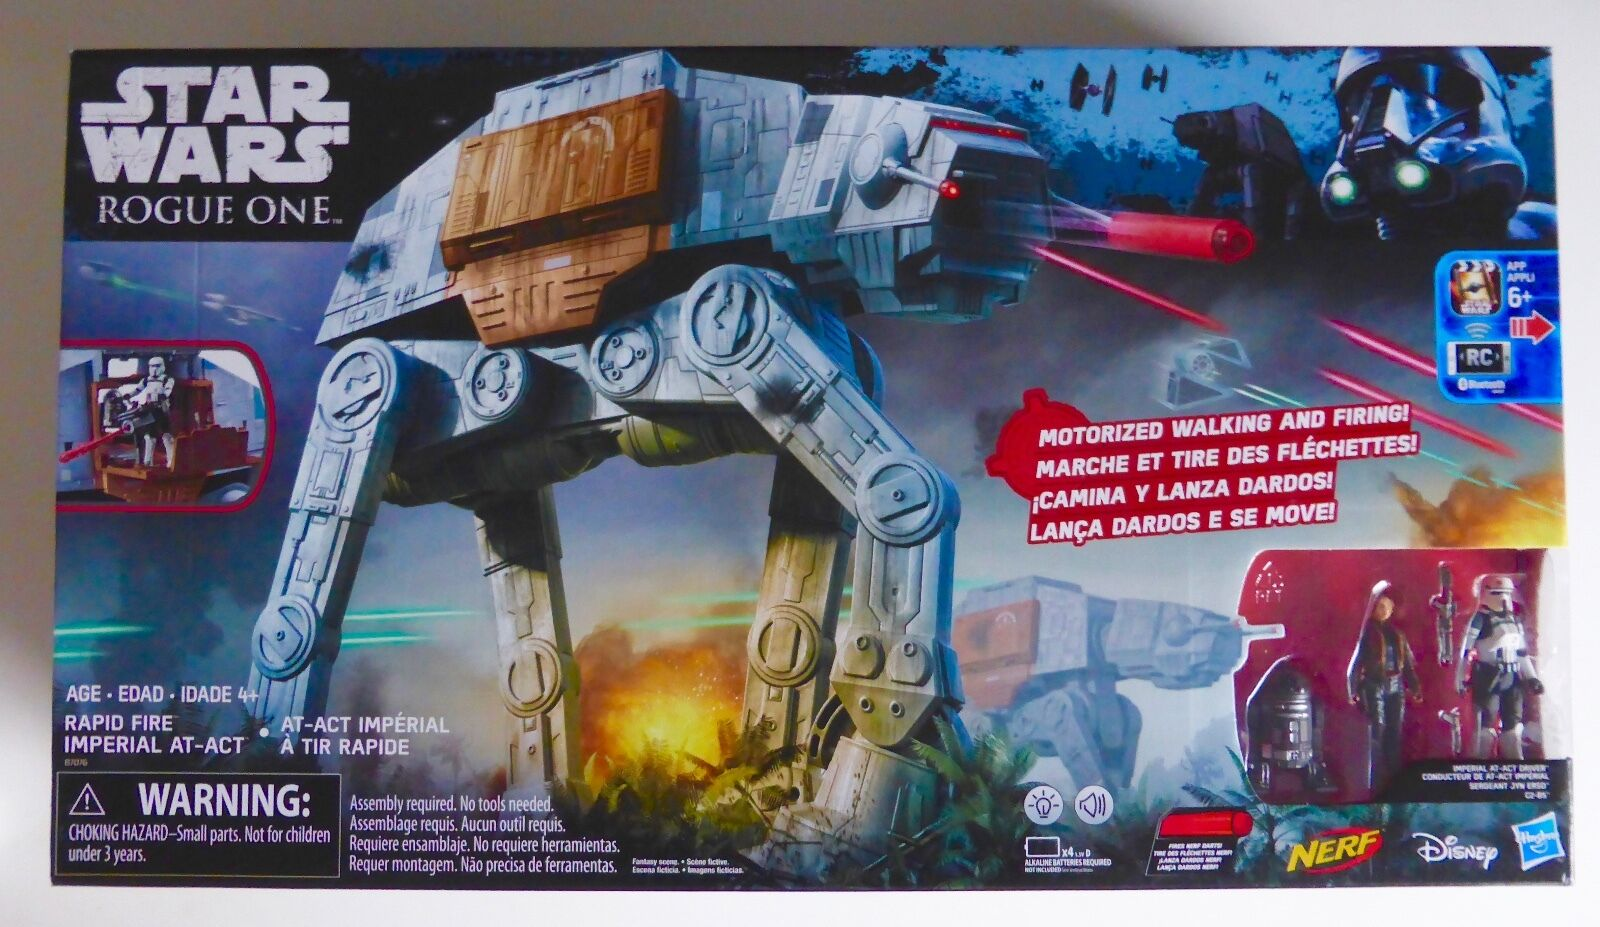 STAR WARS NEW ROGUE ONE NON MINT RAPID FIRE IMPERIAL AT-ACT REMOTE WALKER MISB